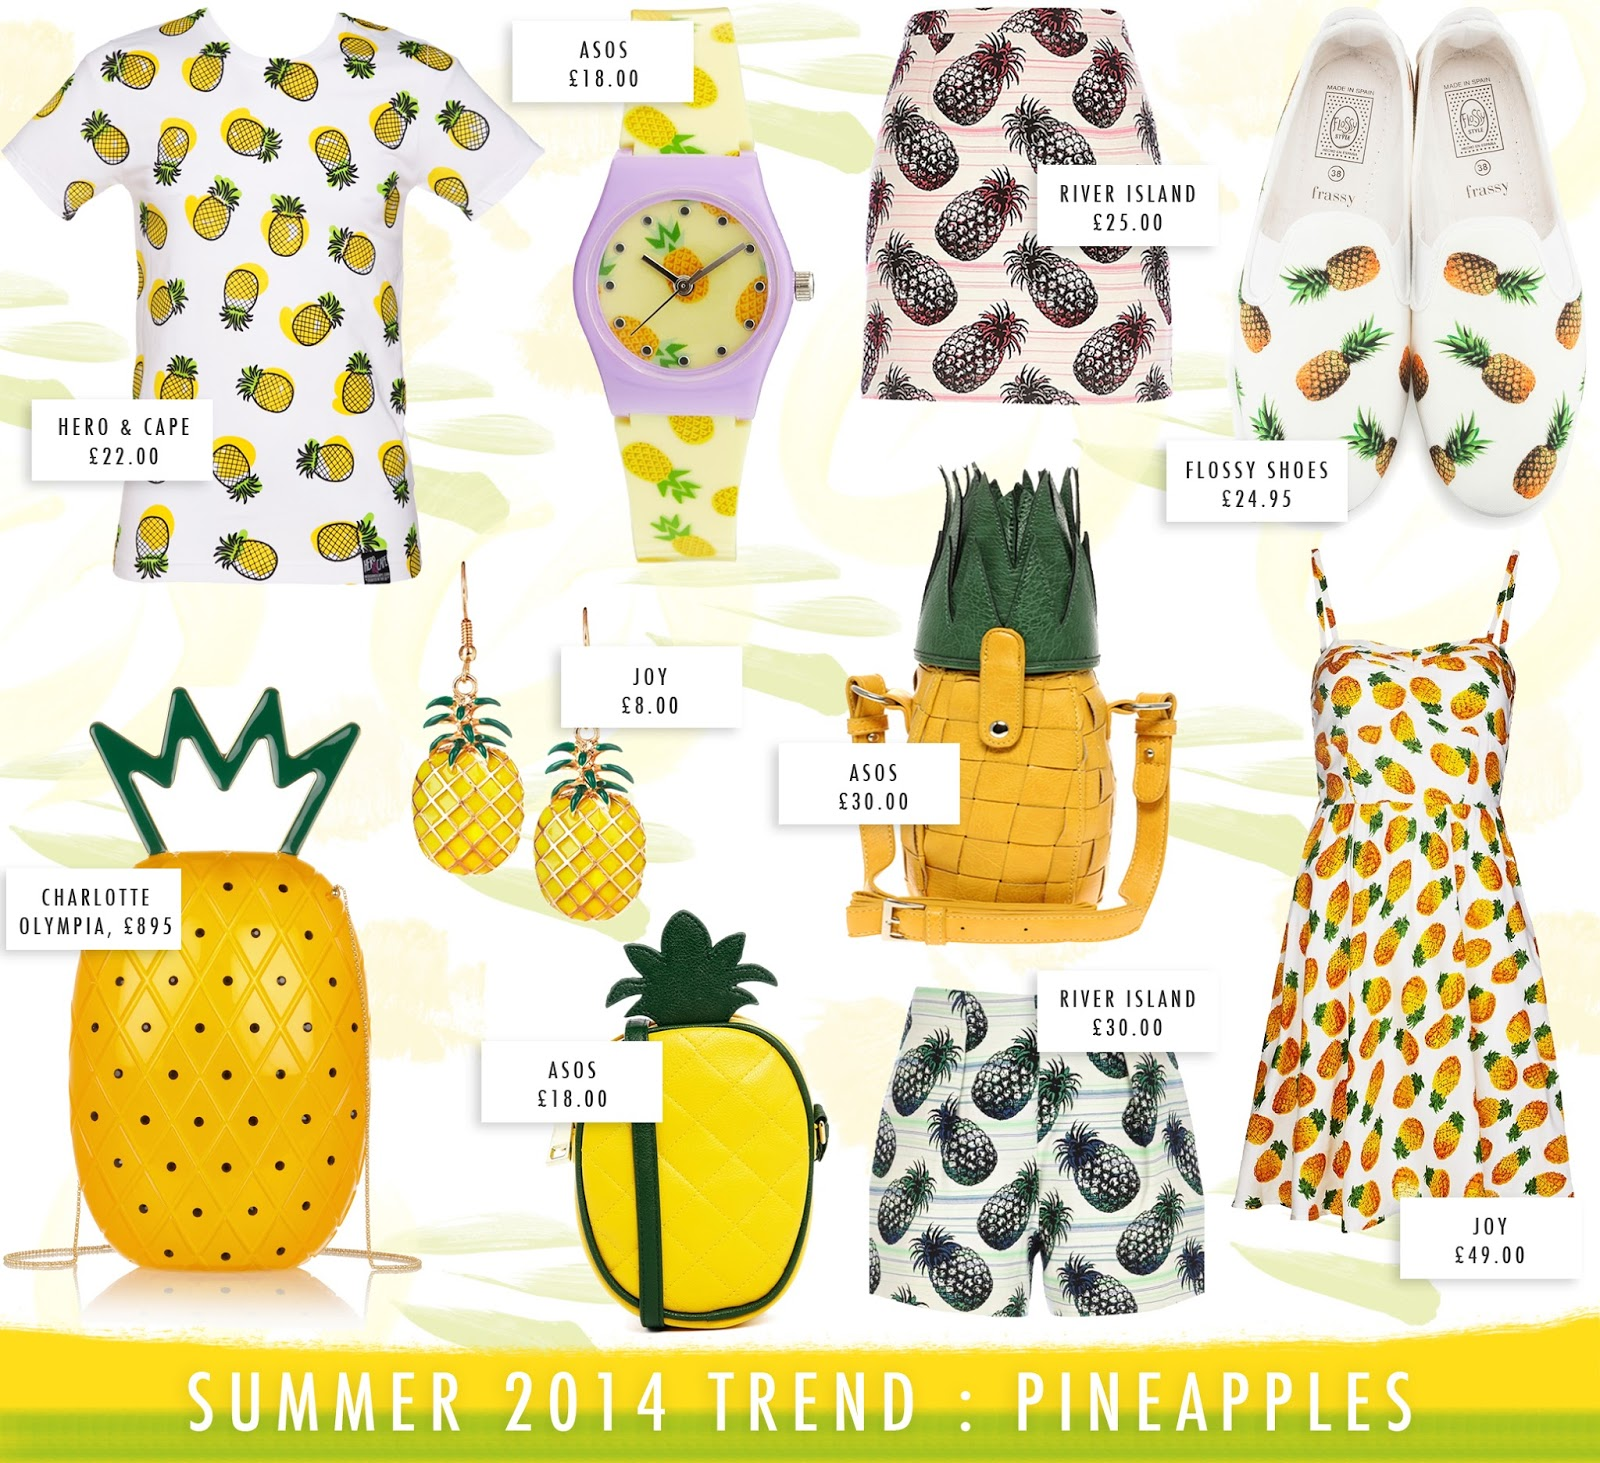 pineapple trend summer 2014, pineapple print tshirt, pineapple print dress, pineapple tshirt